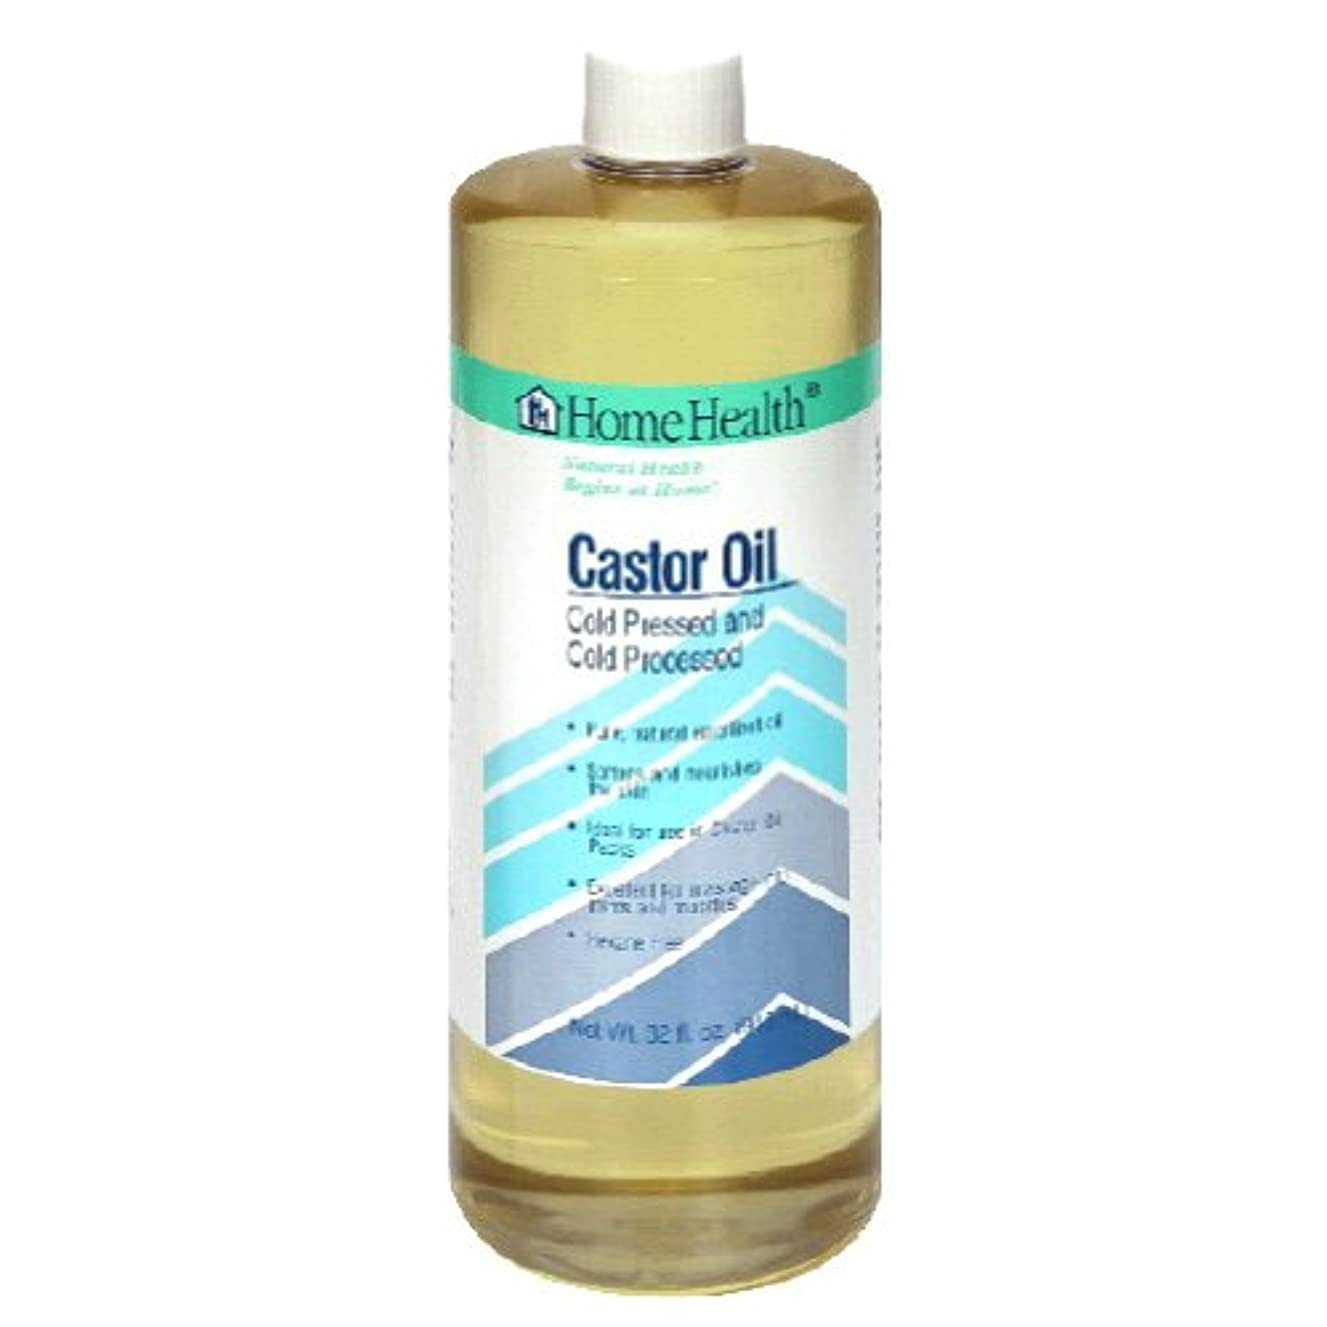 Castor Oil - 32 fl oz by Home Health